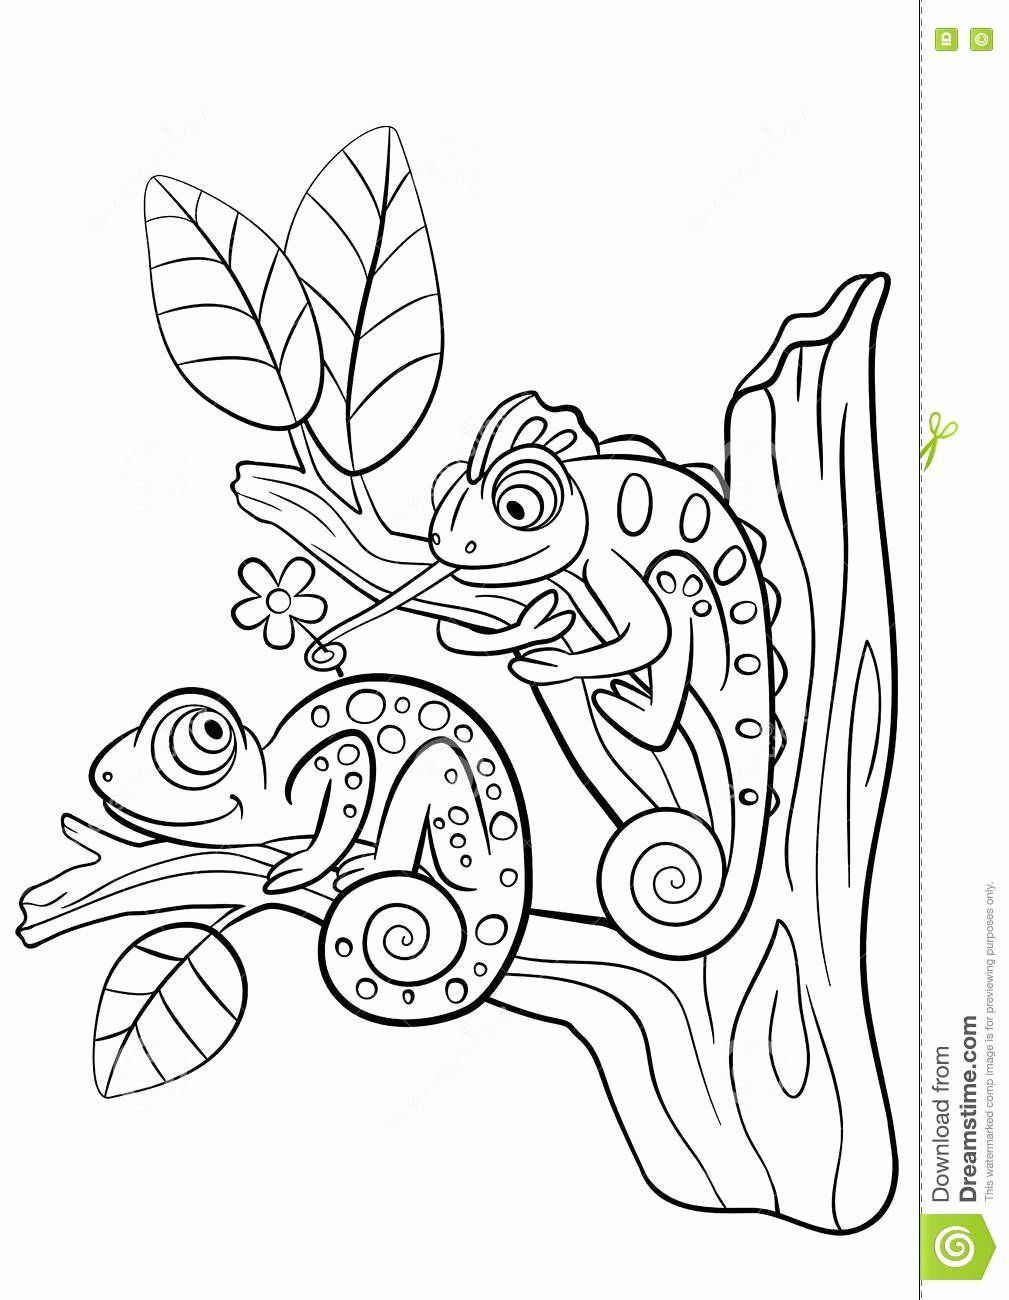 Animal Coloring Book Games Beautiful Coloring Pages Wild Animals Two Little Cute Chameleons